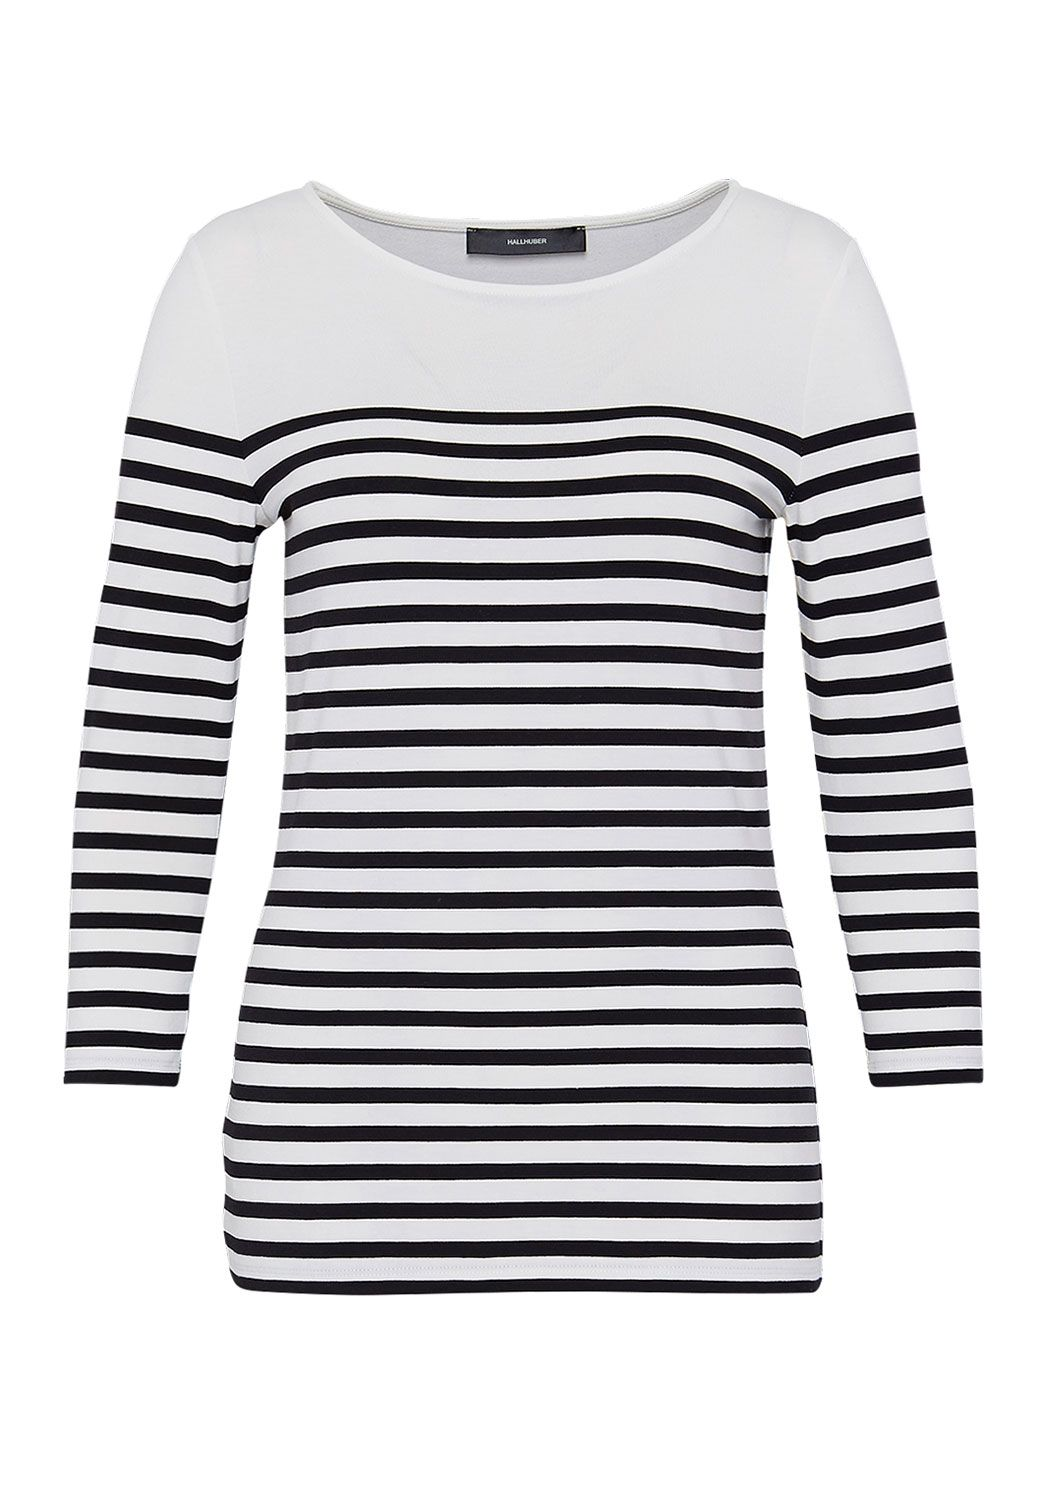 Hallhuber Hallhuber Stripe top with three-quarter sleeves, Black